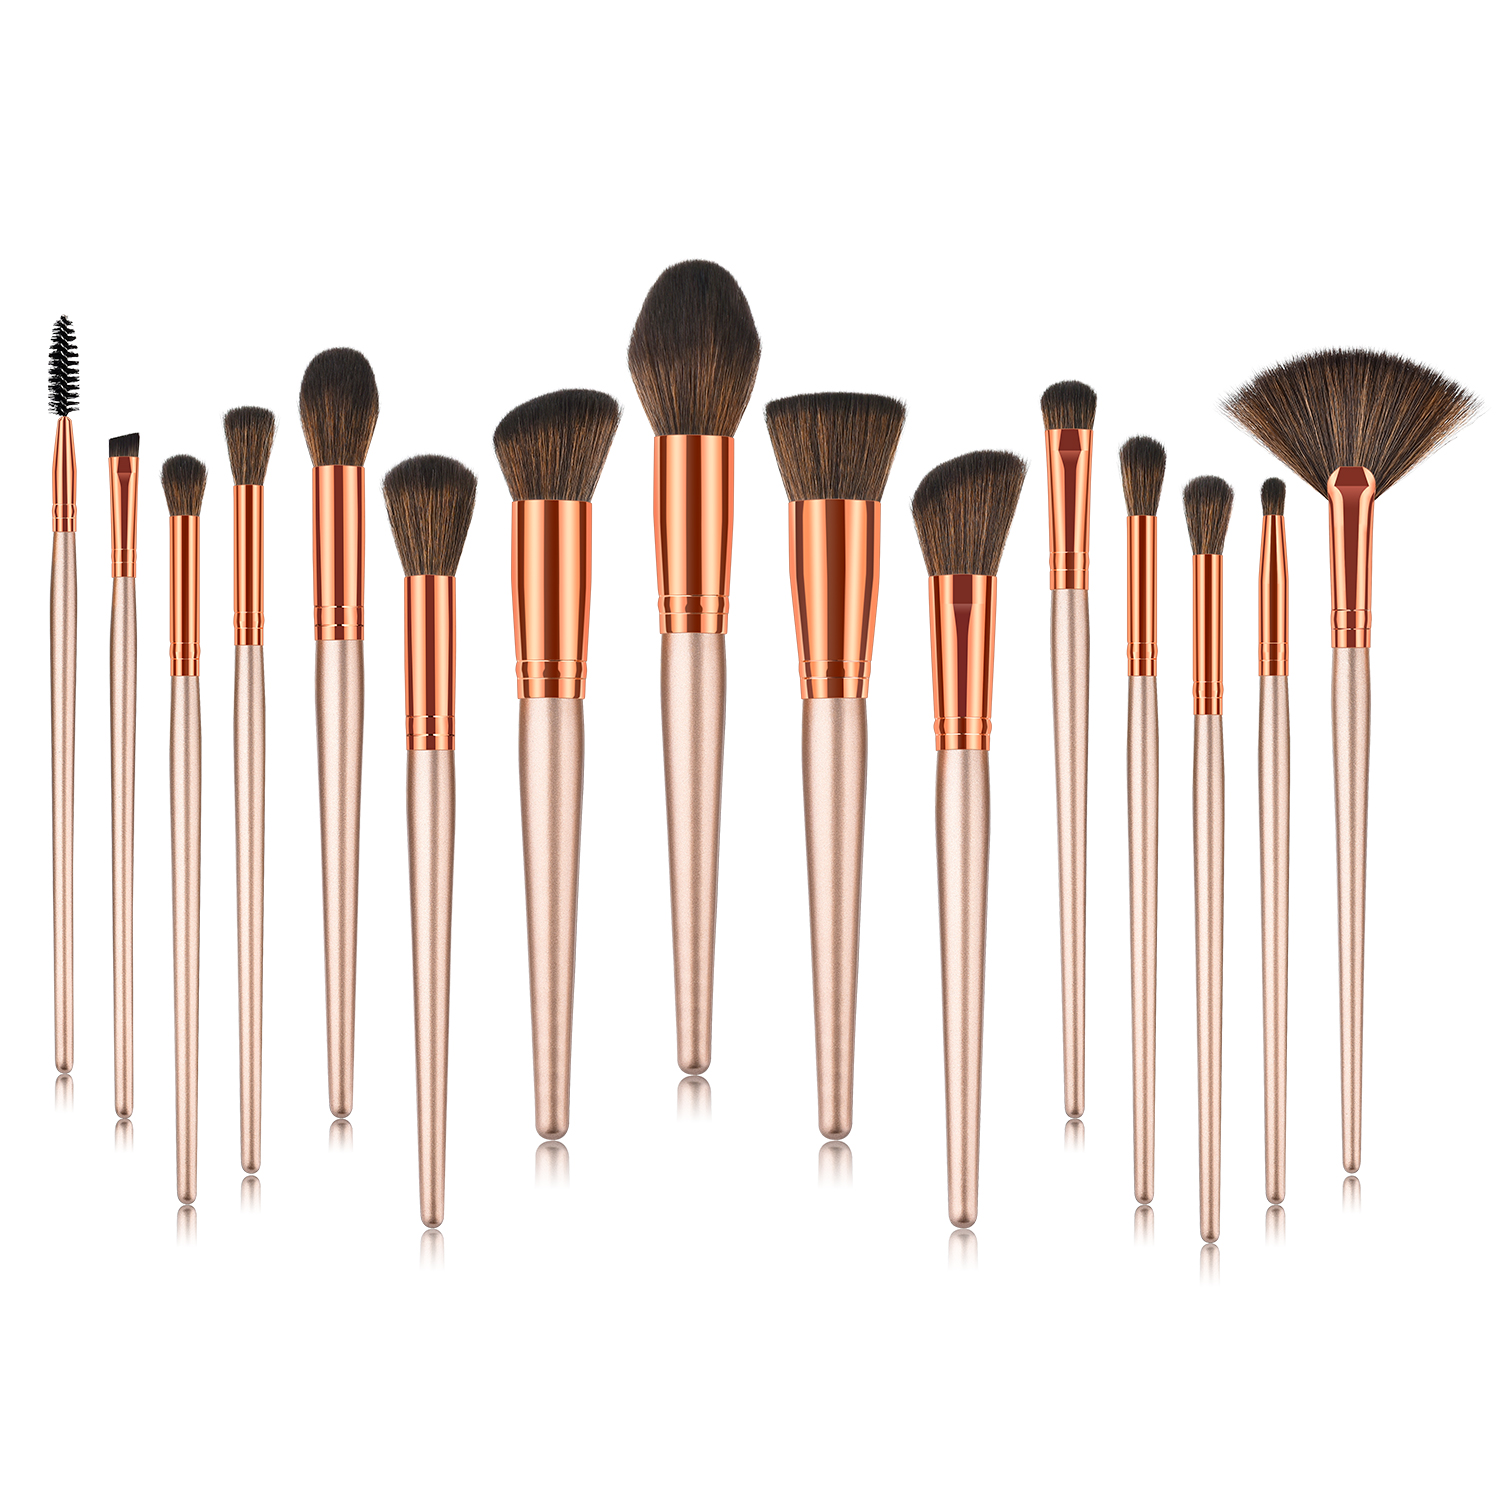 Newest 2018 Private Label Good Use 15 pcs Best Nylon Hair Red Color High-End Professional Makeup Brushes